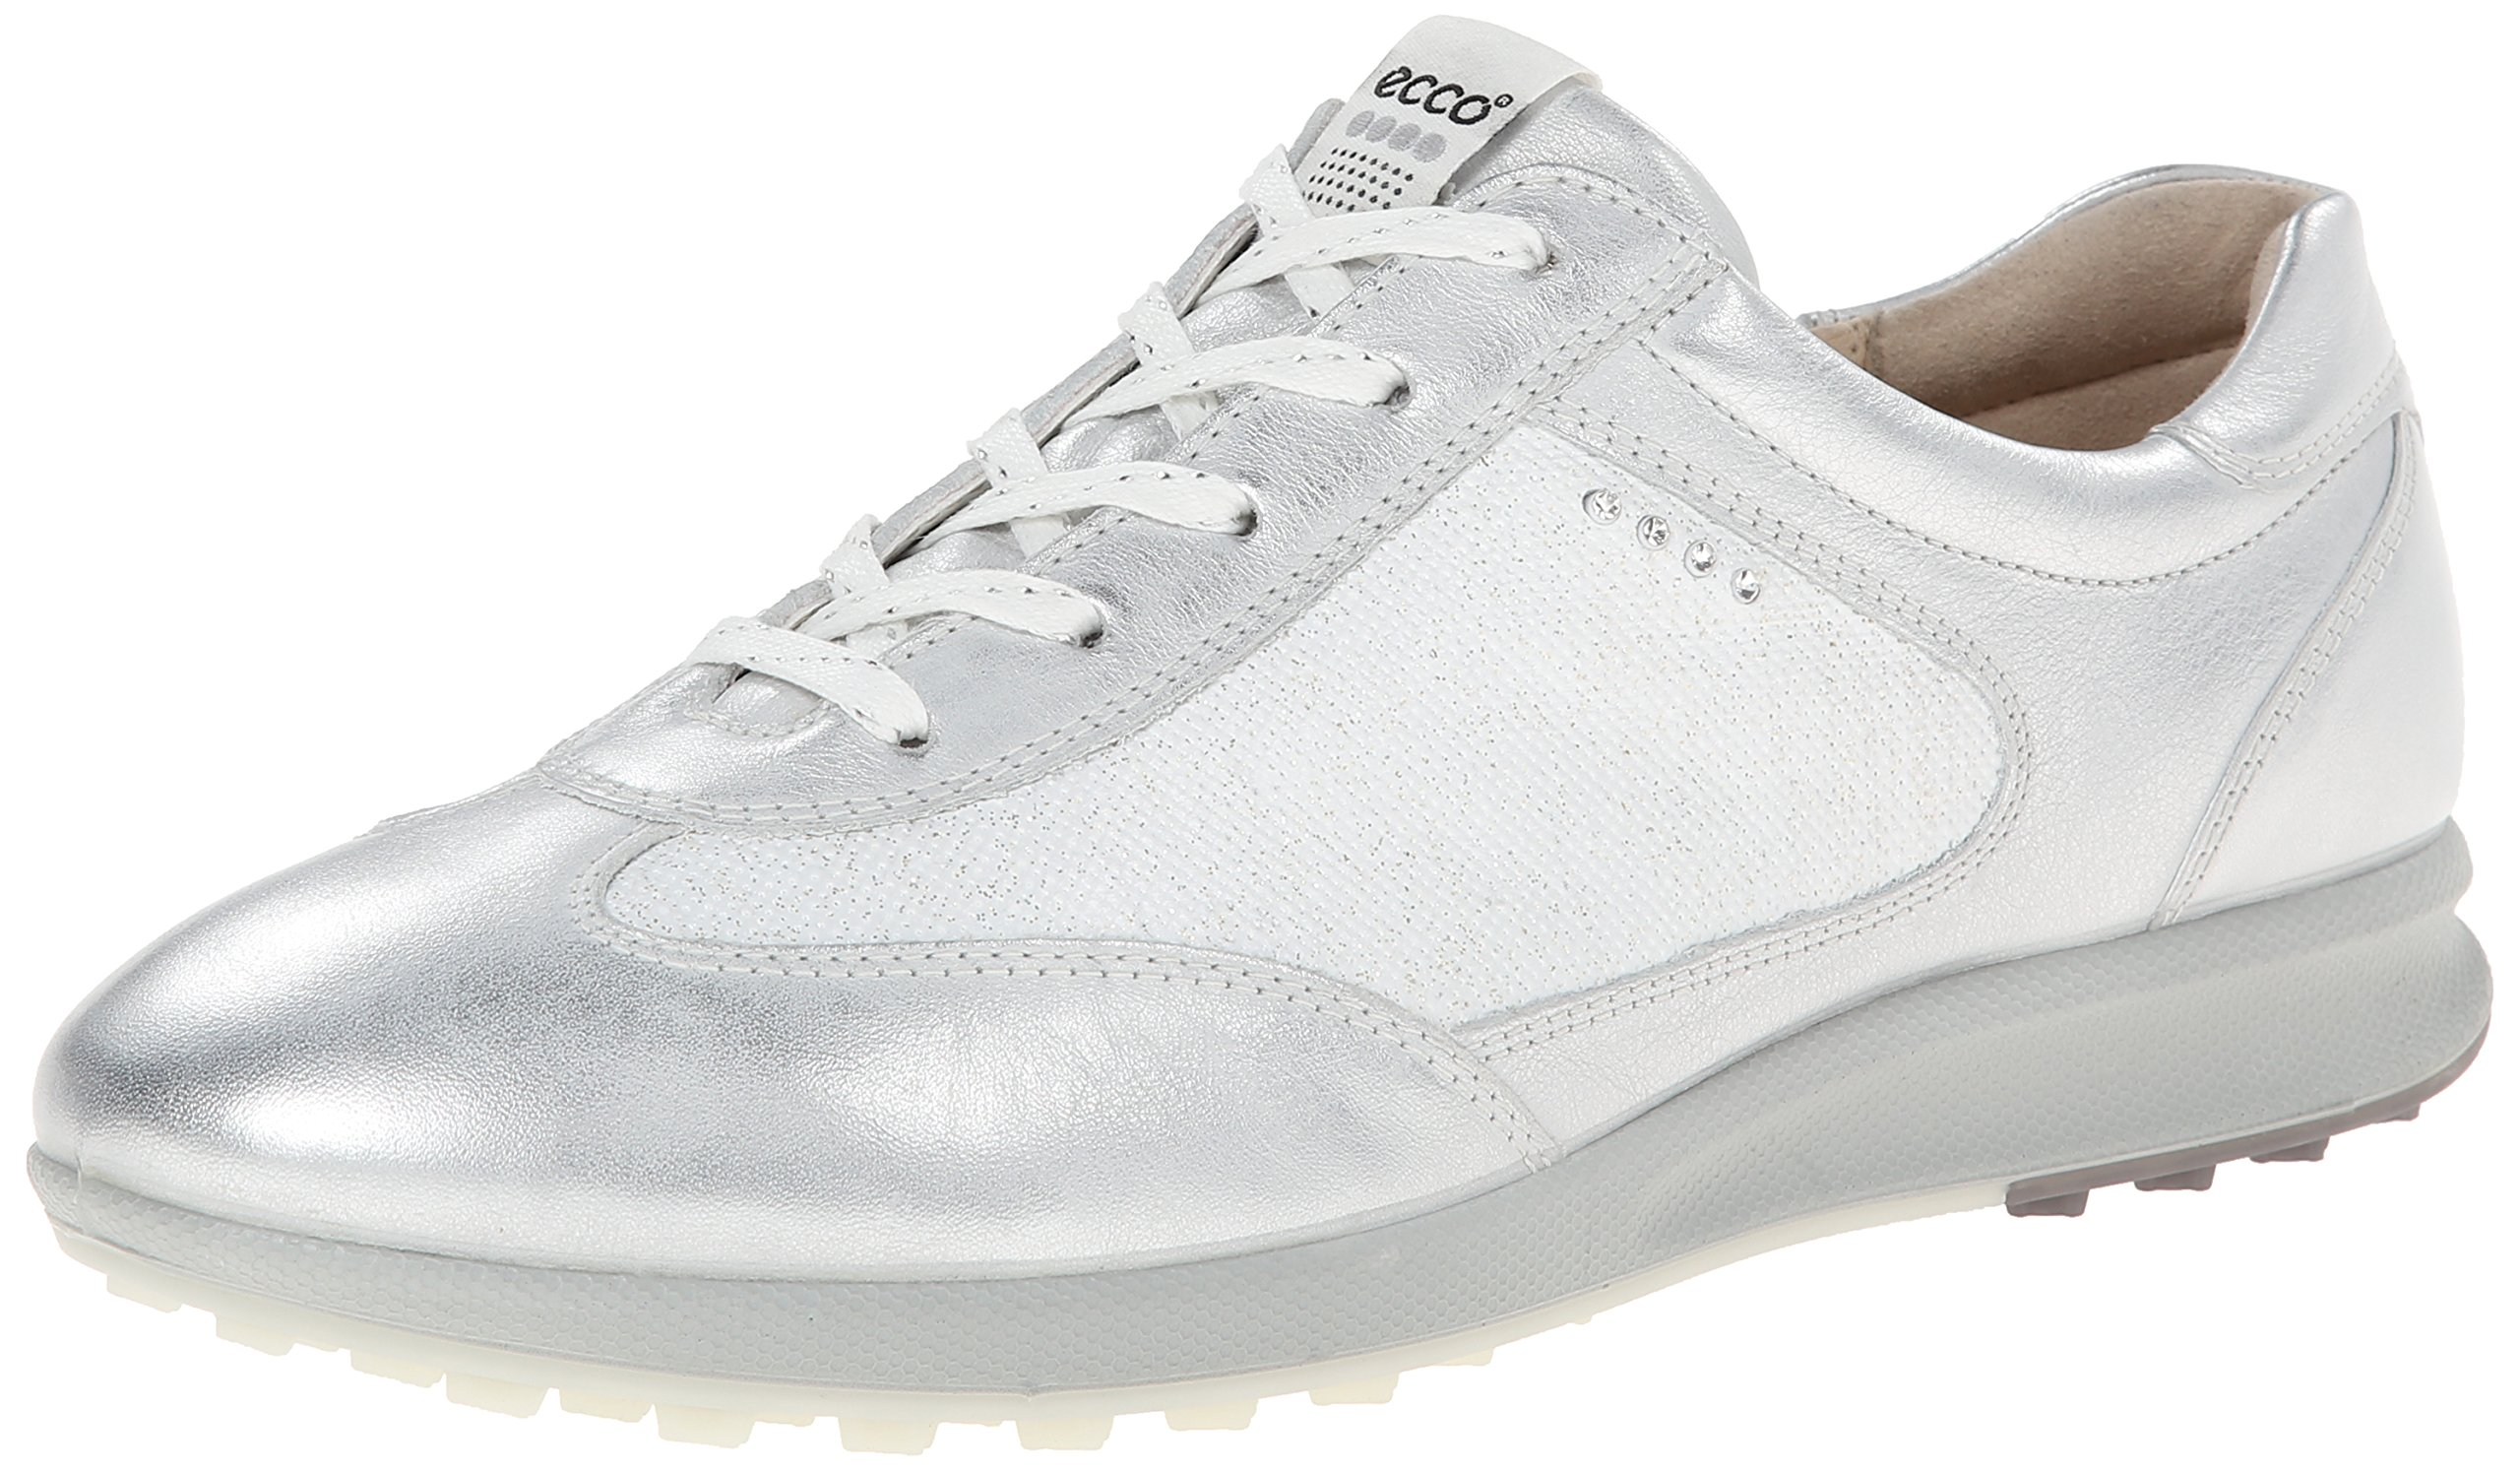 ECCO Golf Women's Street EVO One Luxe White/White Sneaker 41 (US Women's 10-10.5) B - Medium